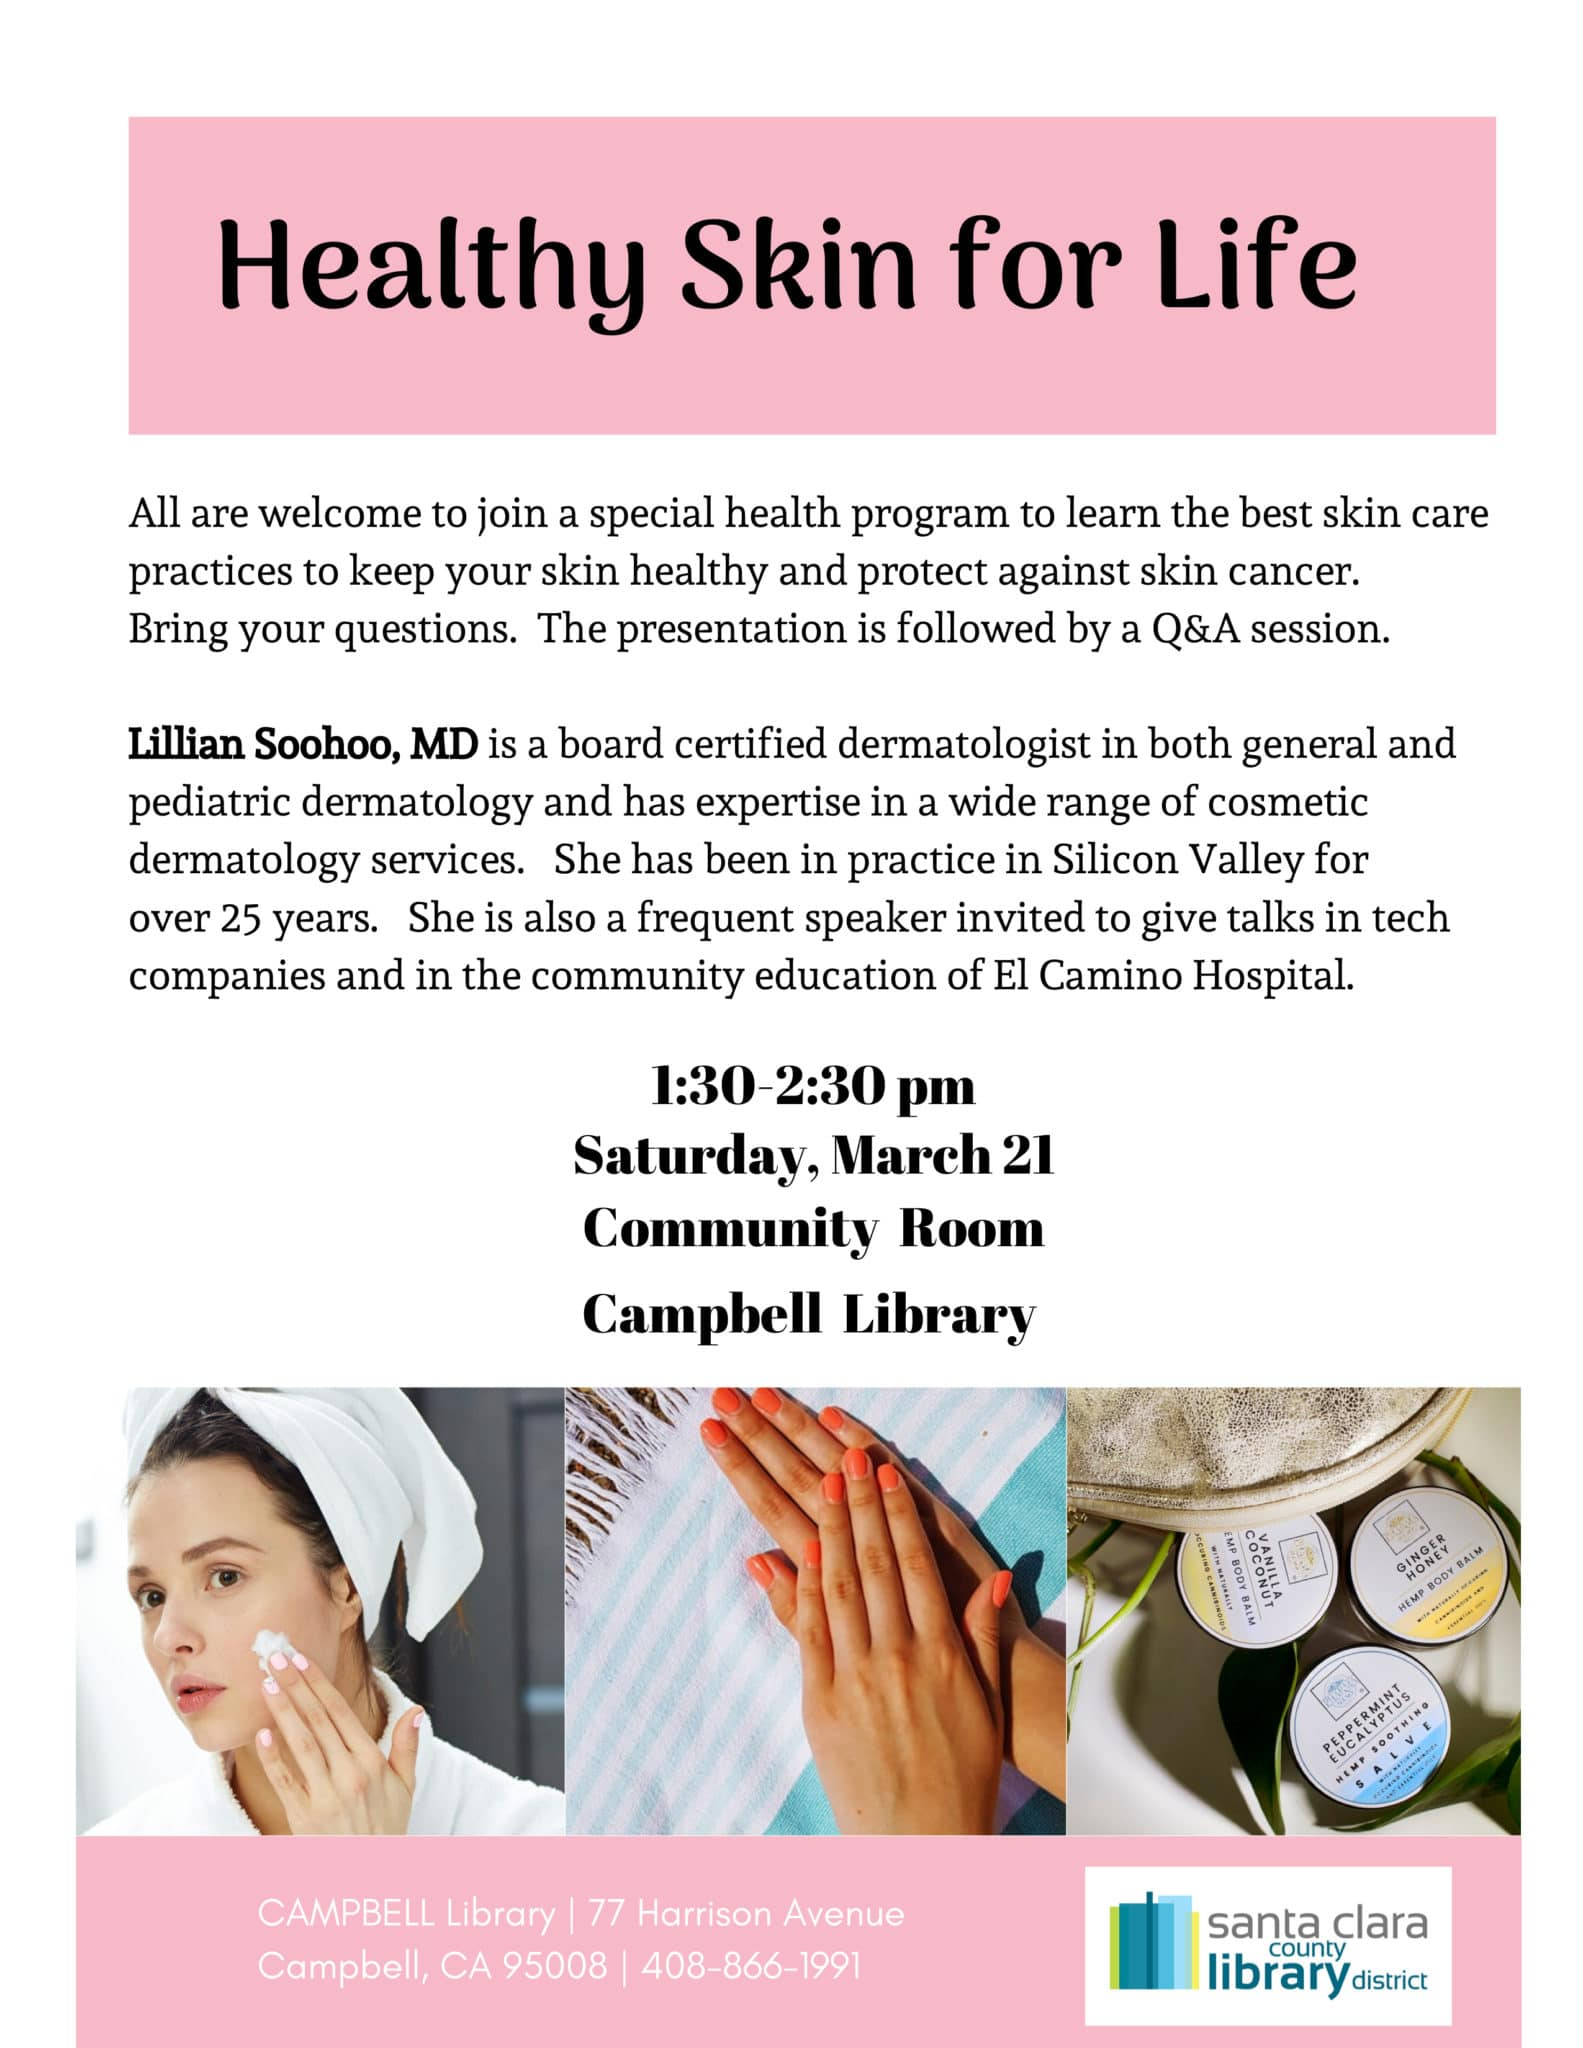 3-21-2020_Campbell Library_Healthy Skin for Life